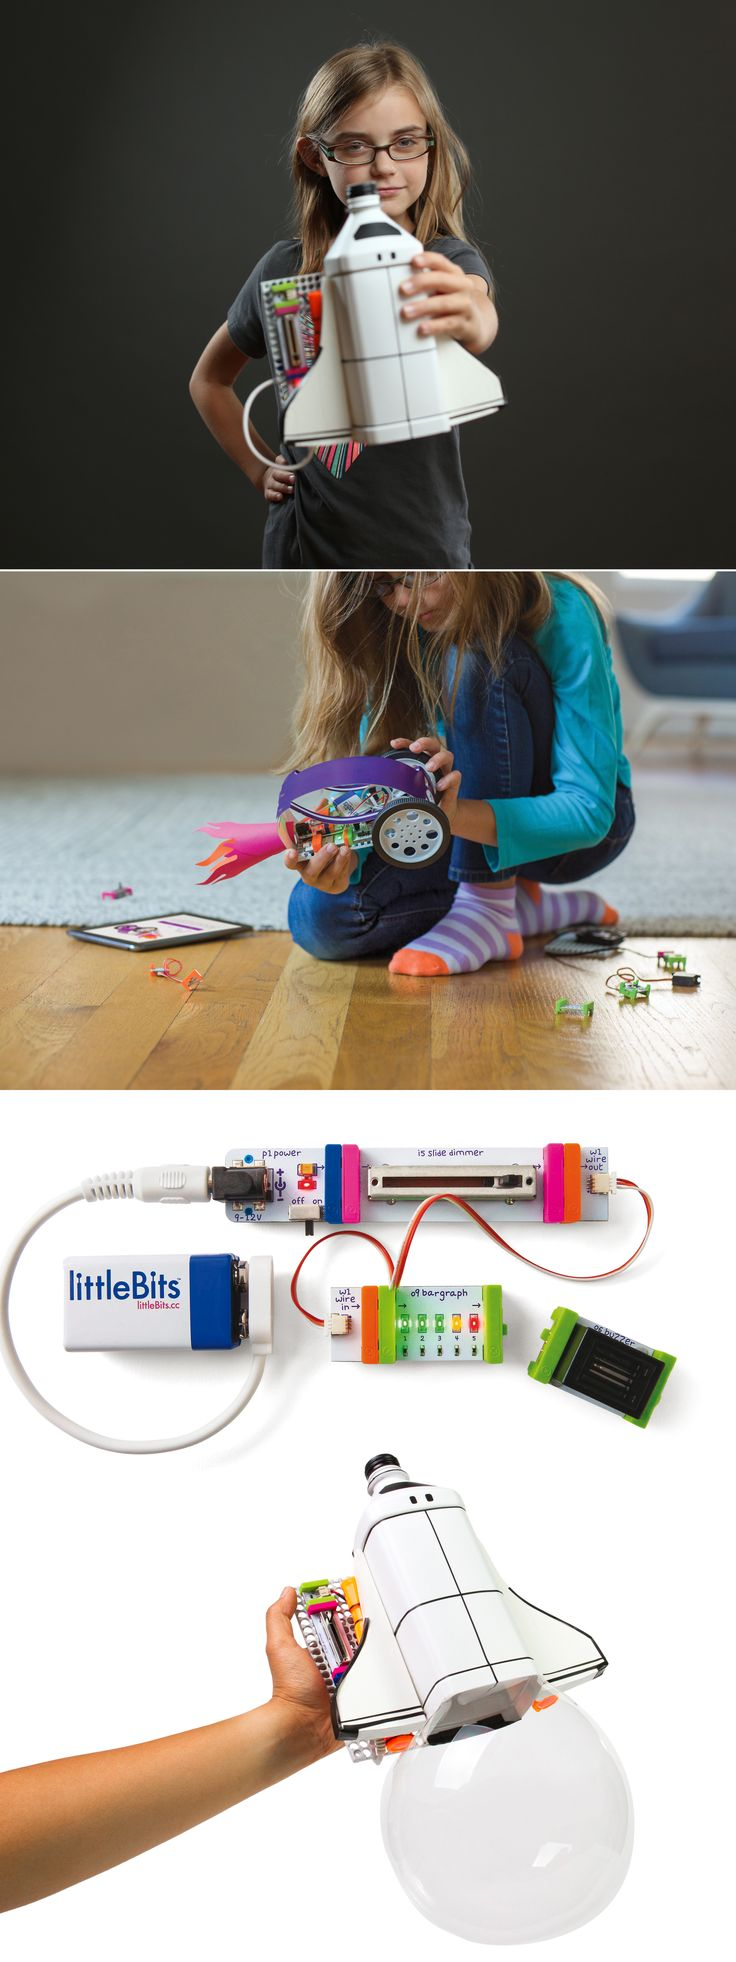 Littlebits un kit per aspiranti maker! #diy #makers #littlebits #faidate #kids littleBits makes technology kits that are fun, easy-to-use, and infinitely creative. The kits are composed of electronic building blocks that are color-coded, magnetic, and make complex technology simple and fun. Together they're interchangeable in millions of different ways to empower kids to invent anything - from a sibling alarm, to a wireless robot, to a digital instrument.